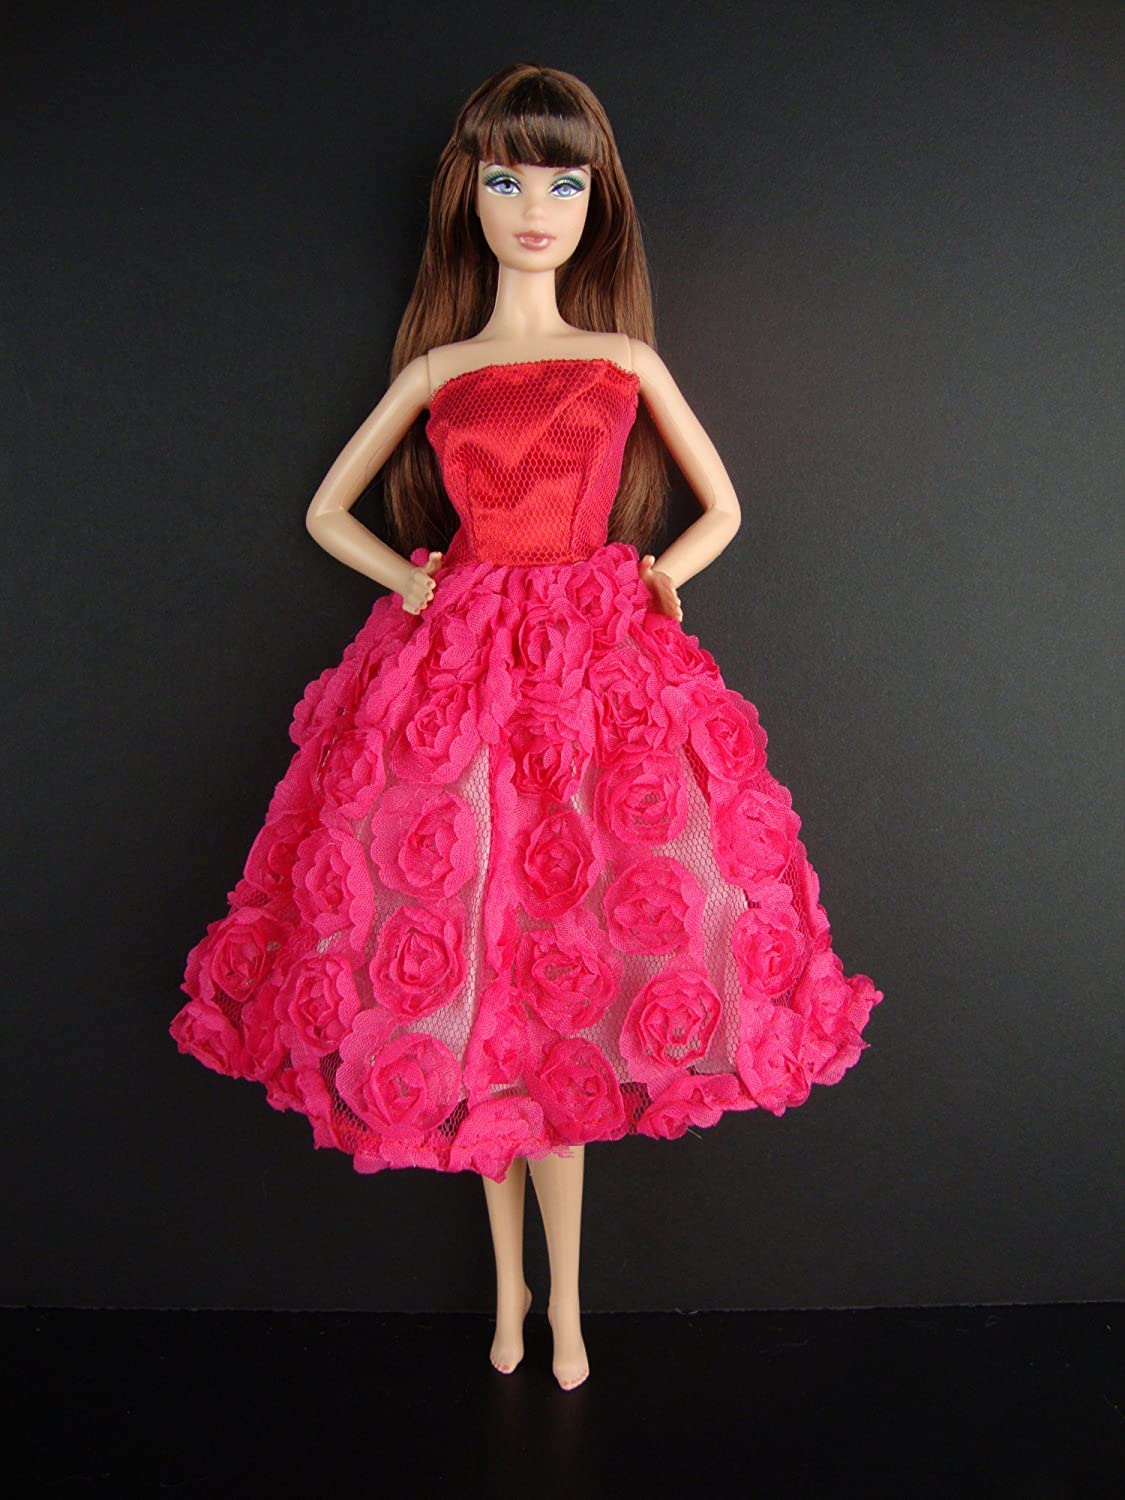 Amazon.com: A Hot Pink Knee Length Dress Covered in Roses It so Cute ...